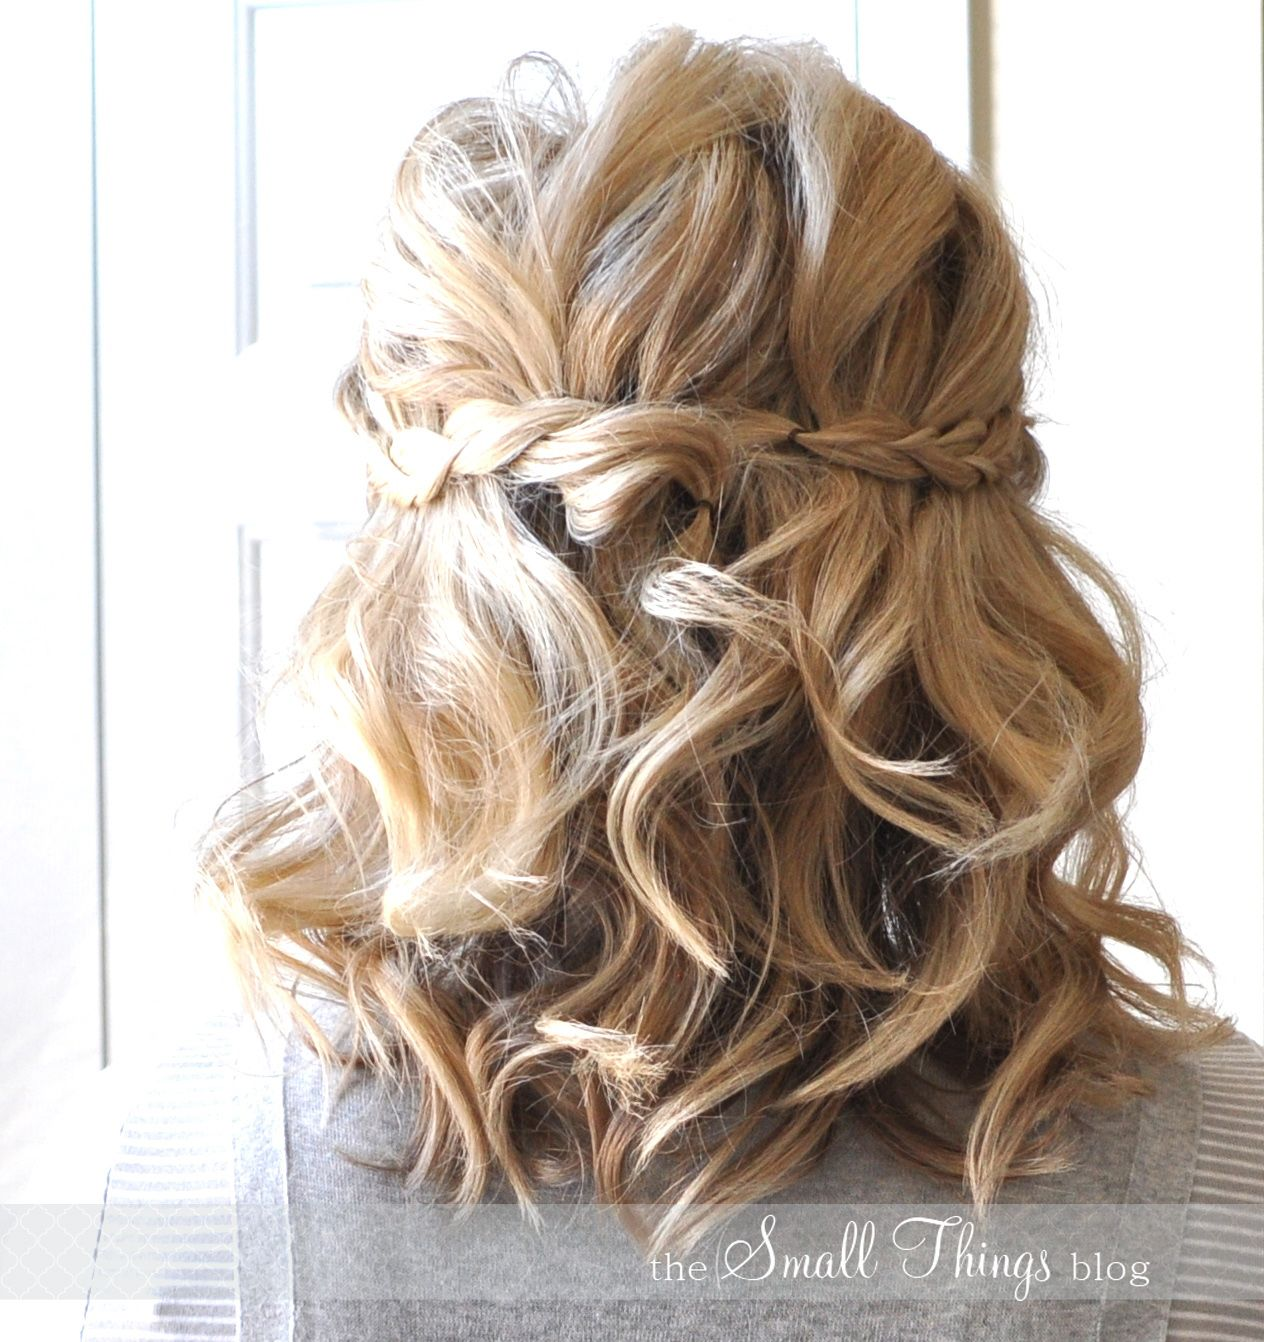 45 ways to do midlength hair | cosmetology, fun things and school